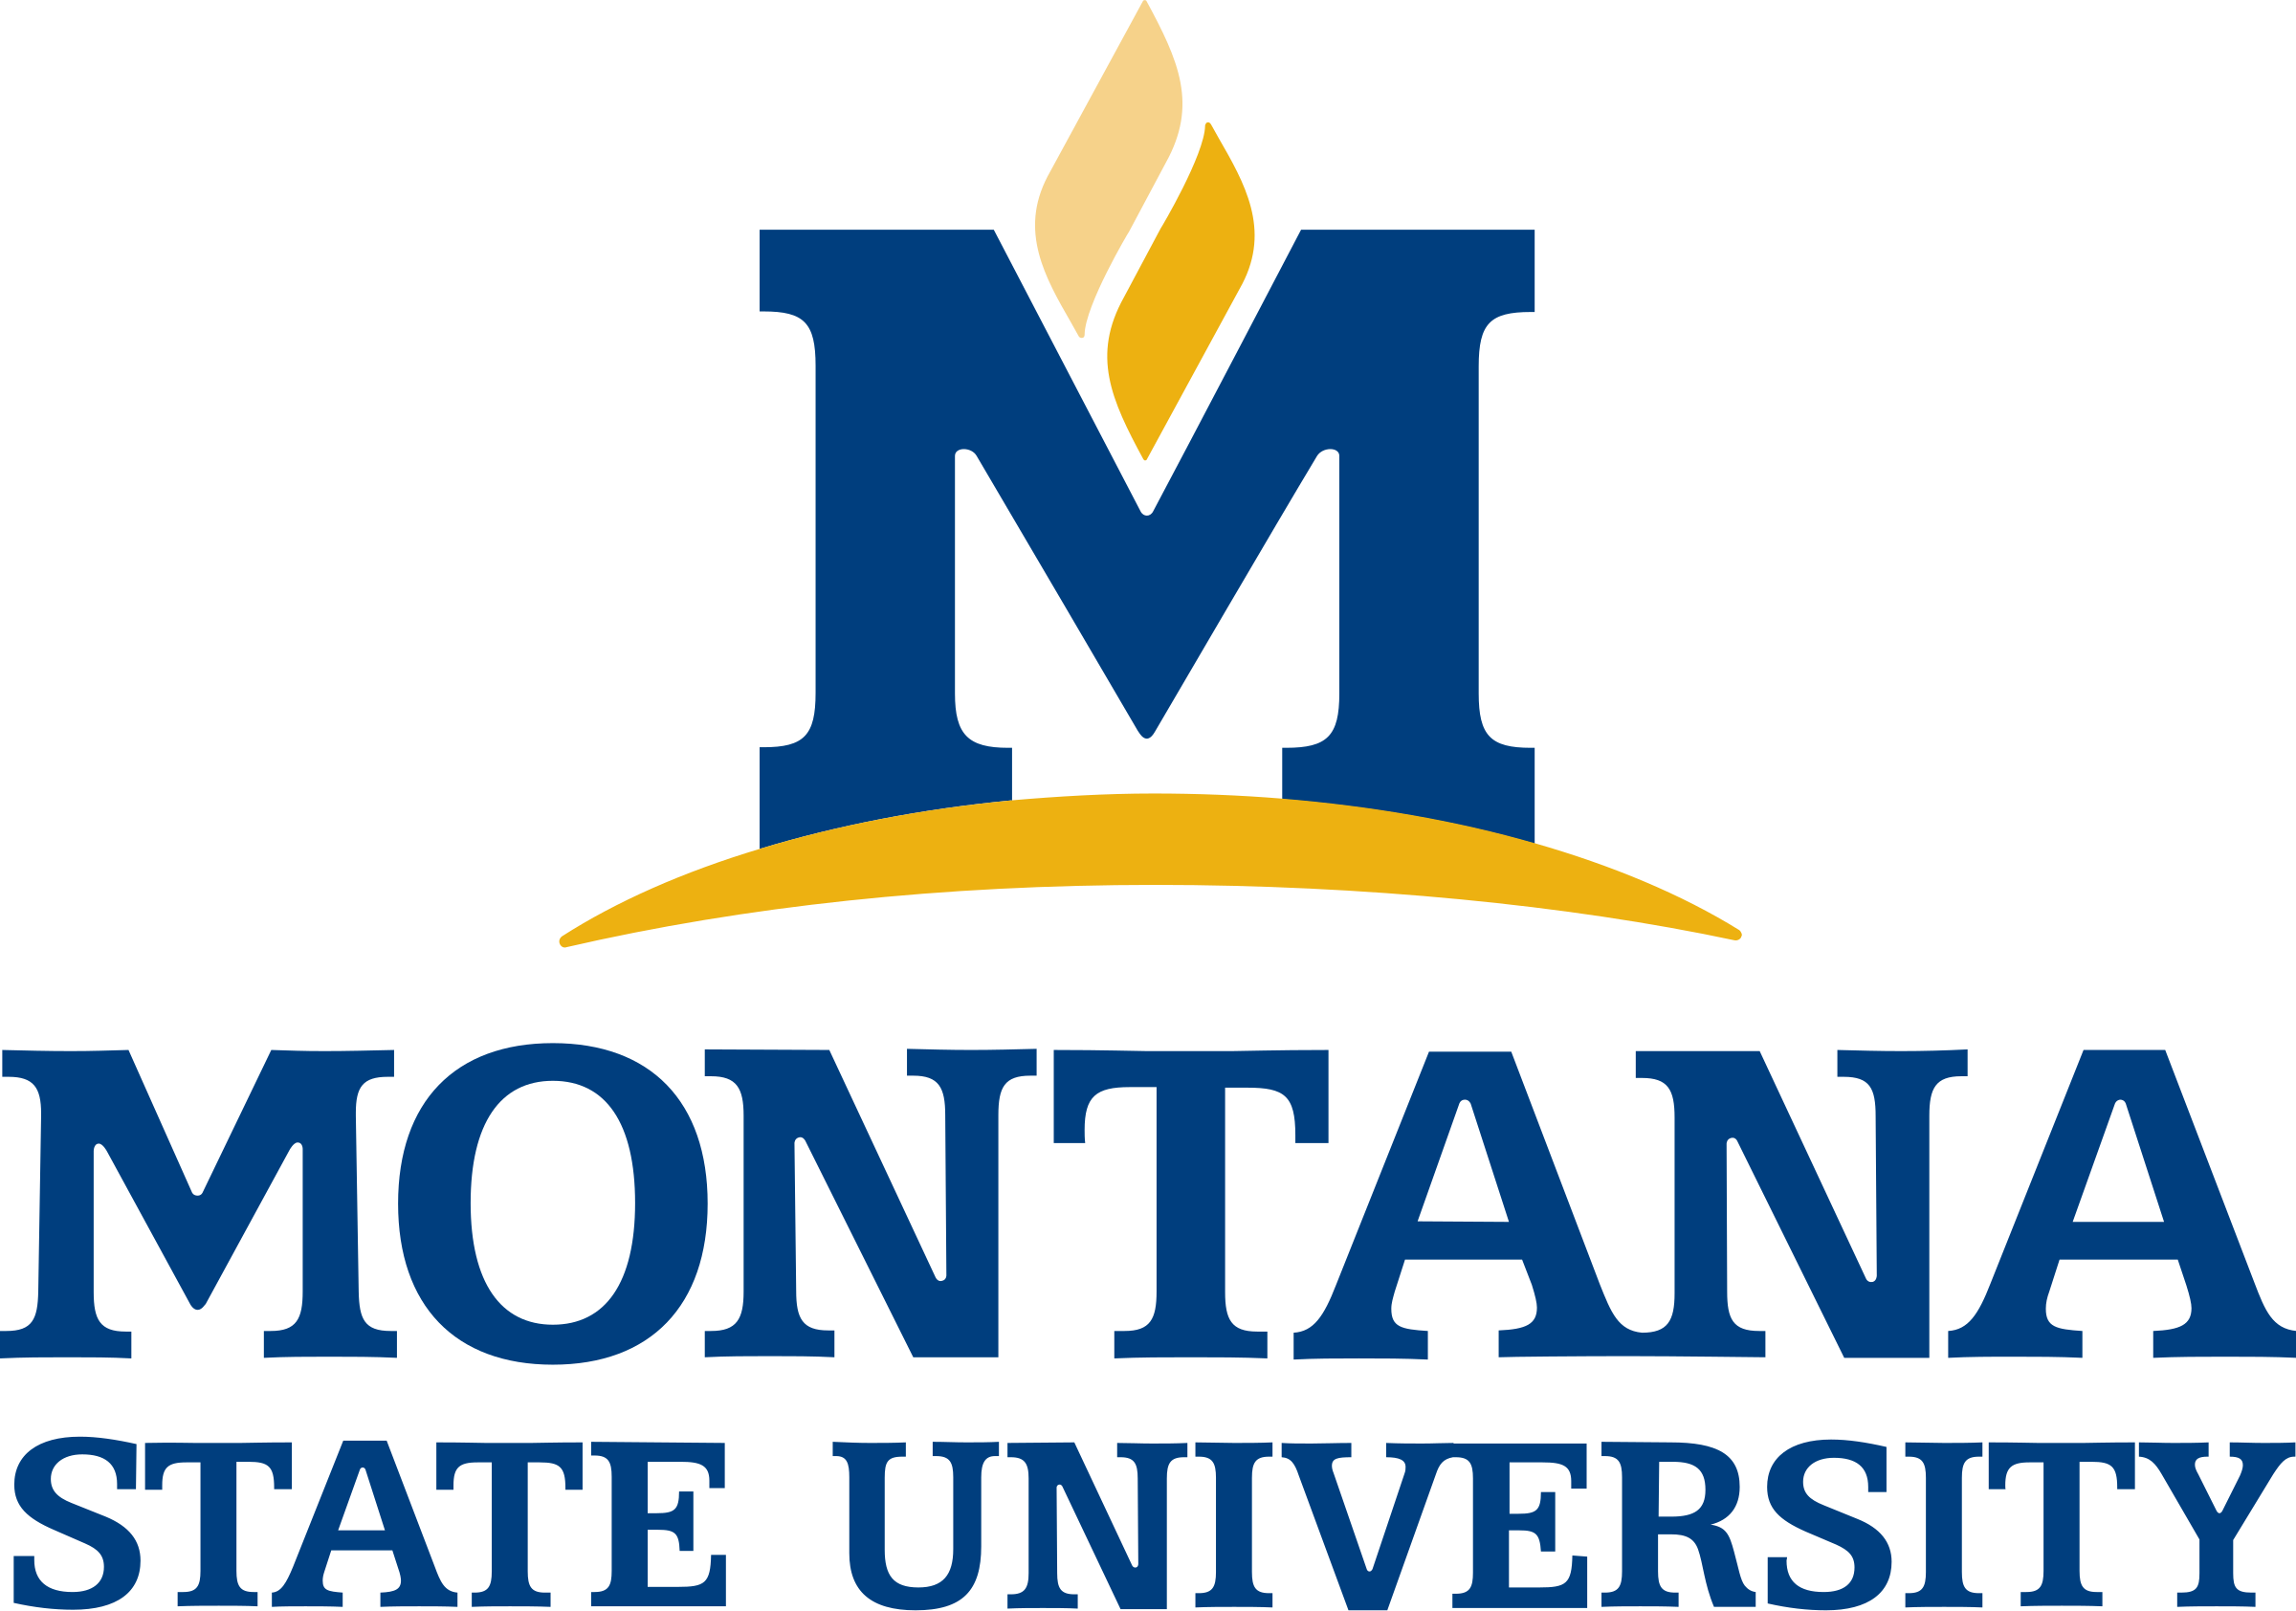 Montana State University Logo PNG Transparent & SVG Vector ...